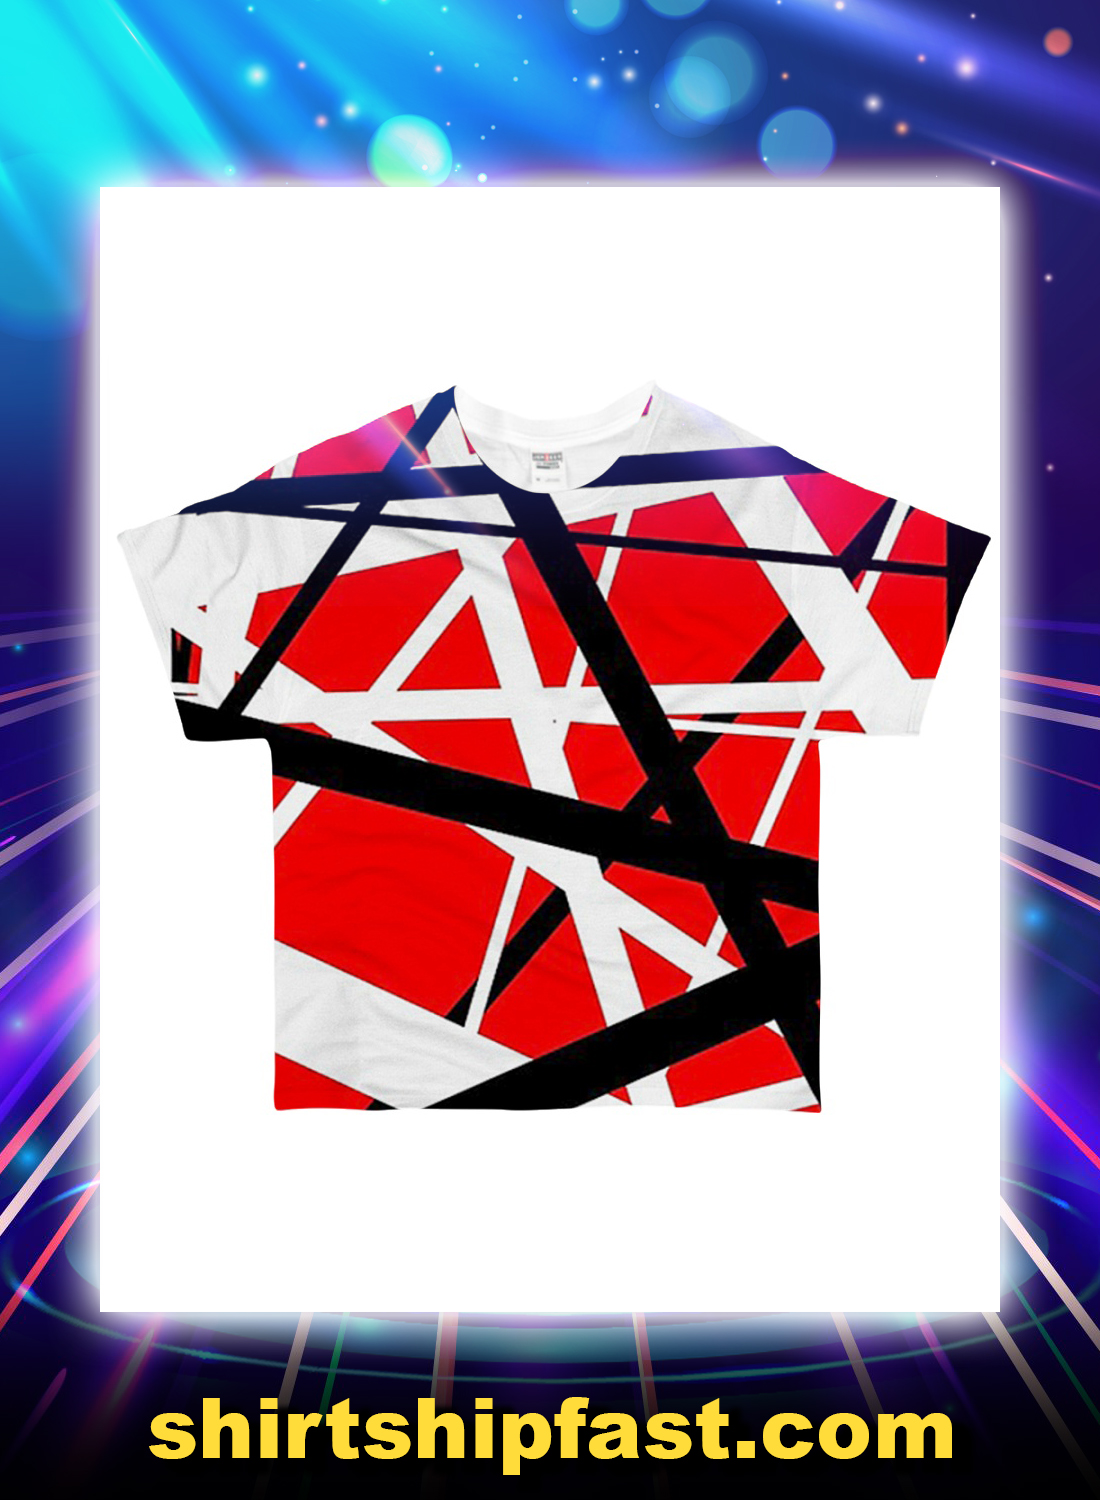 Eddie van halen all over printed 3d t-shirt - Picture 1